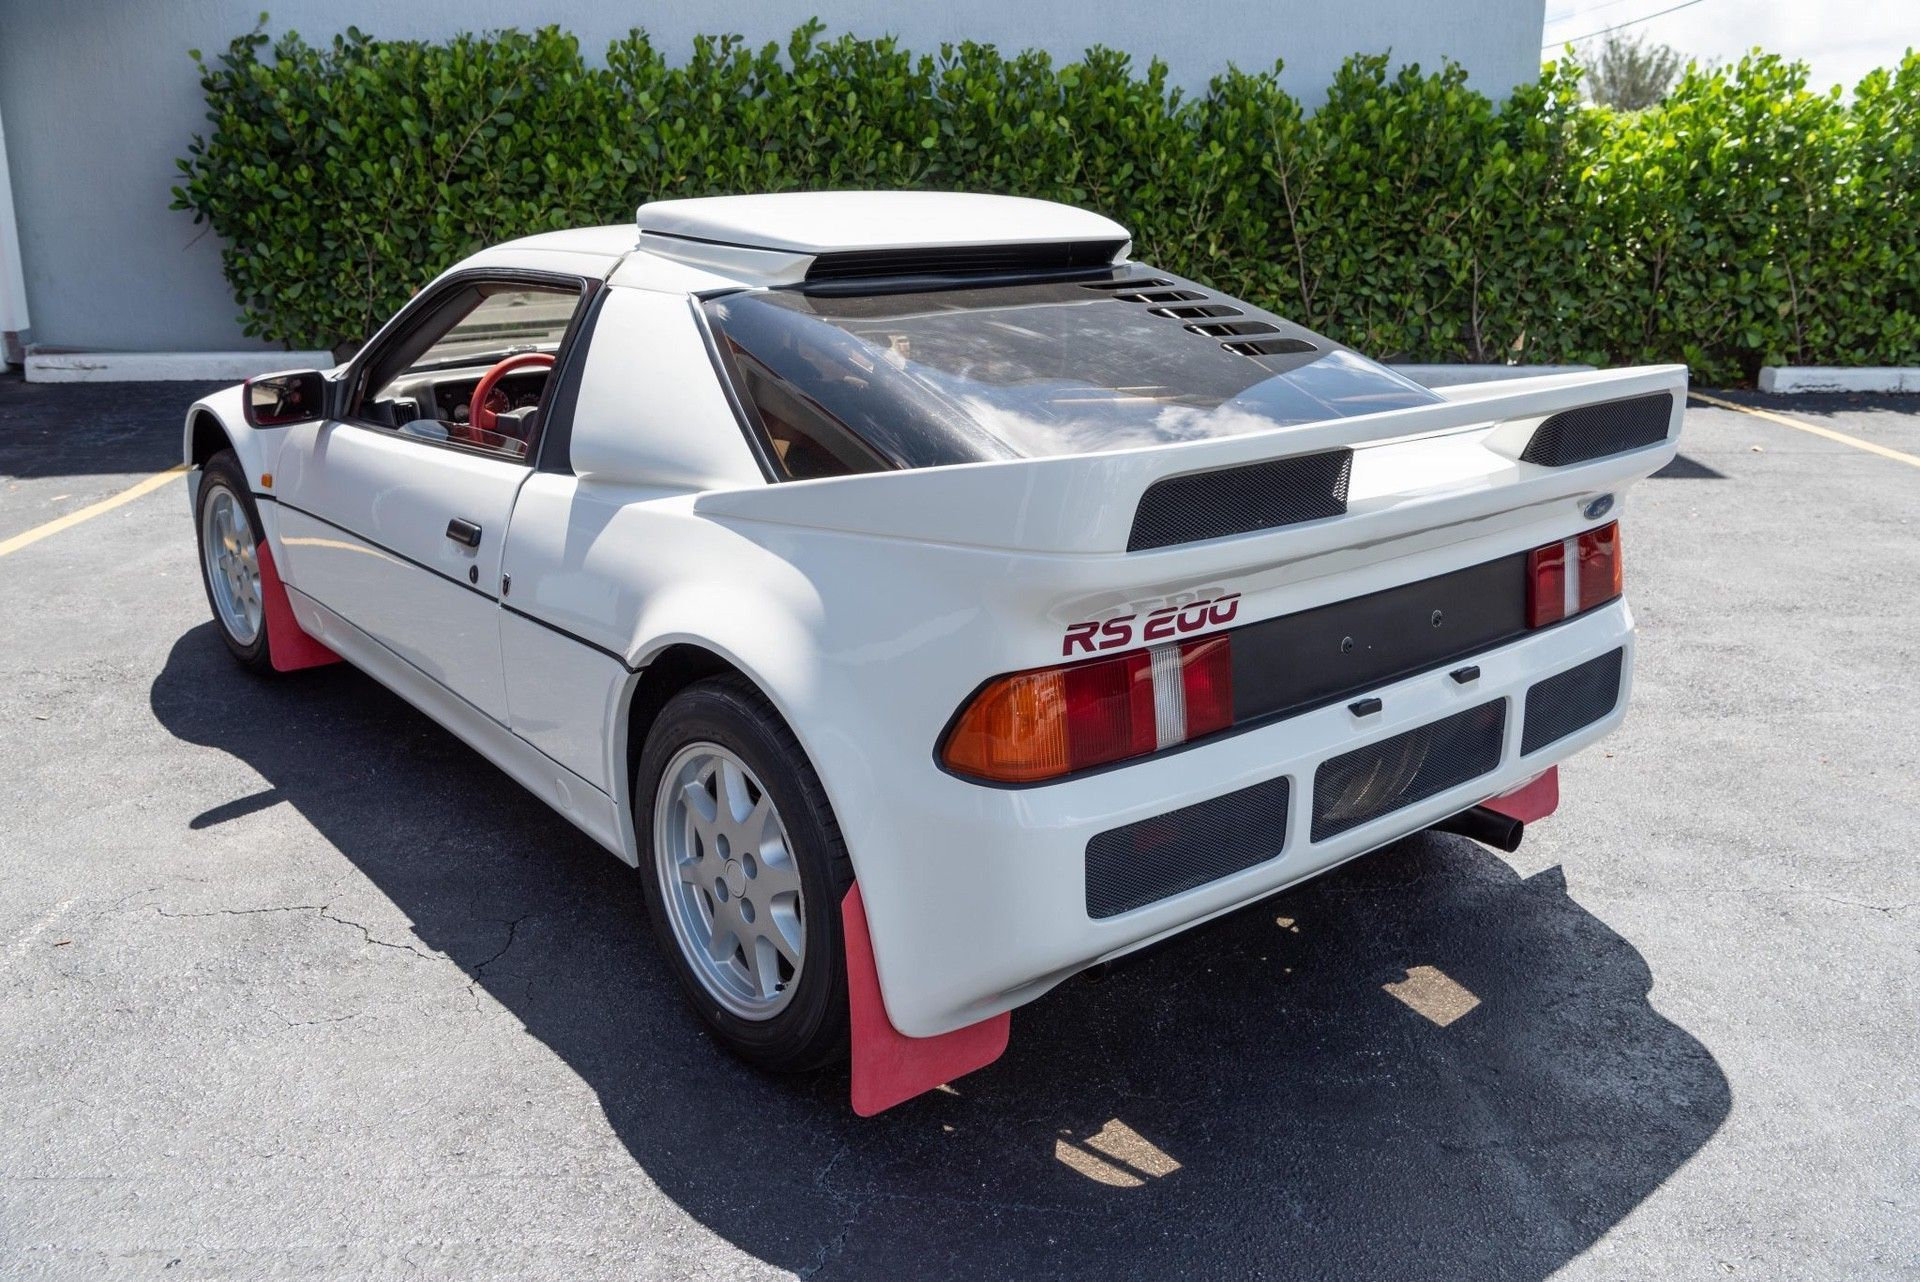 1986_Ford_RS200_sale-0009